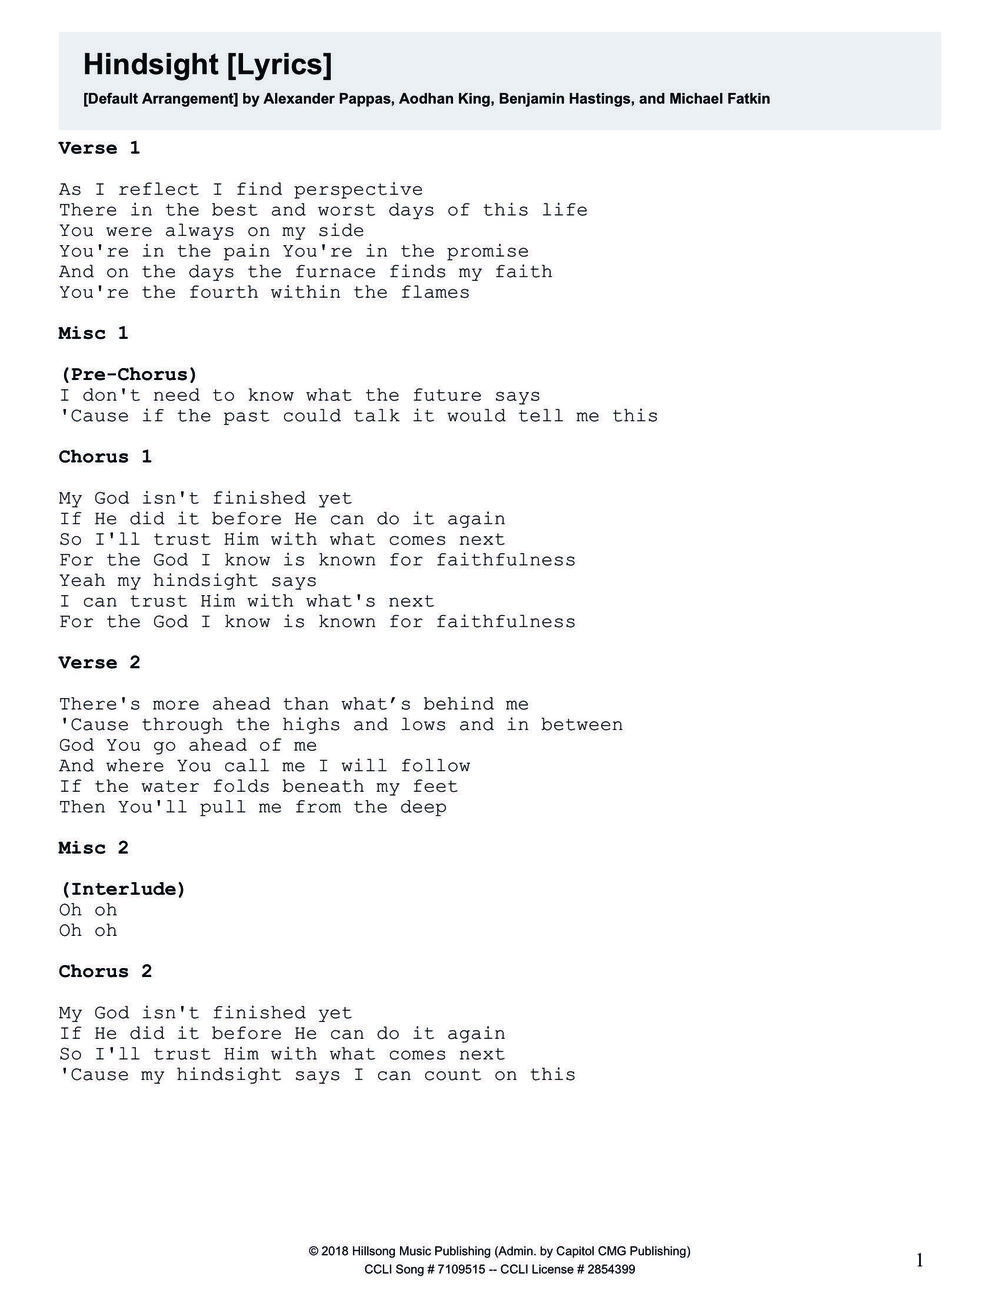 Hindsight-lyrics.jpg